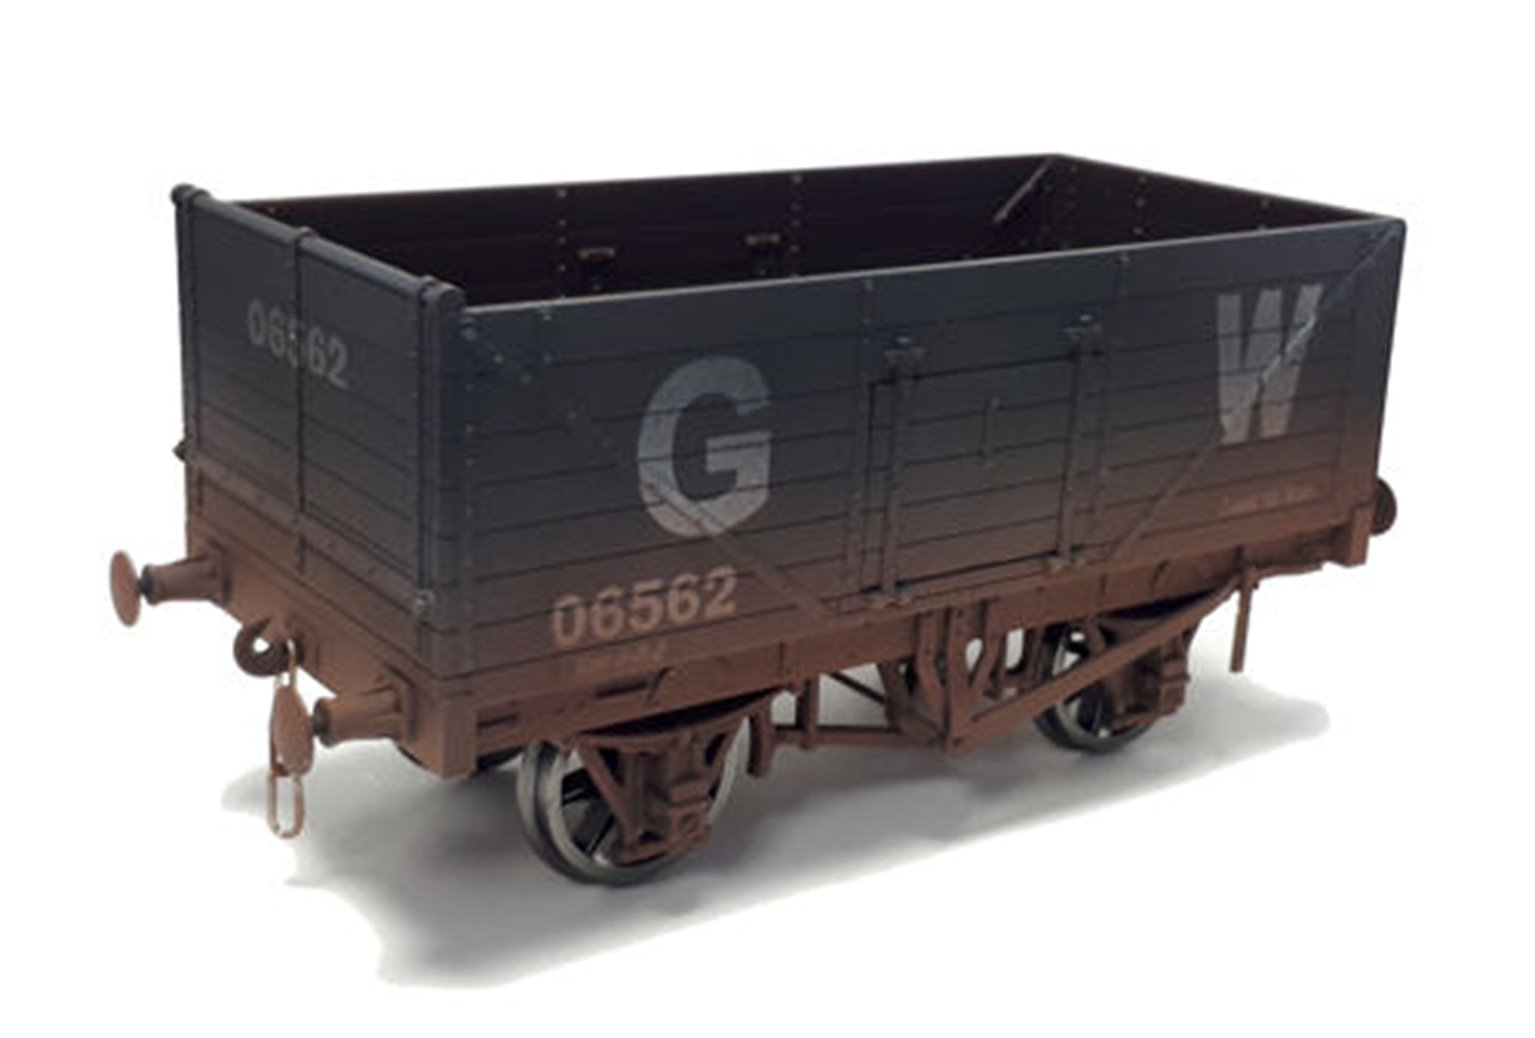 7F-071-033W 7 Plank Wagon GWR 06562 Weathered